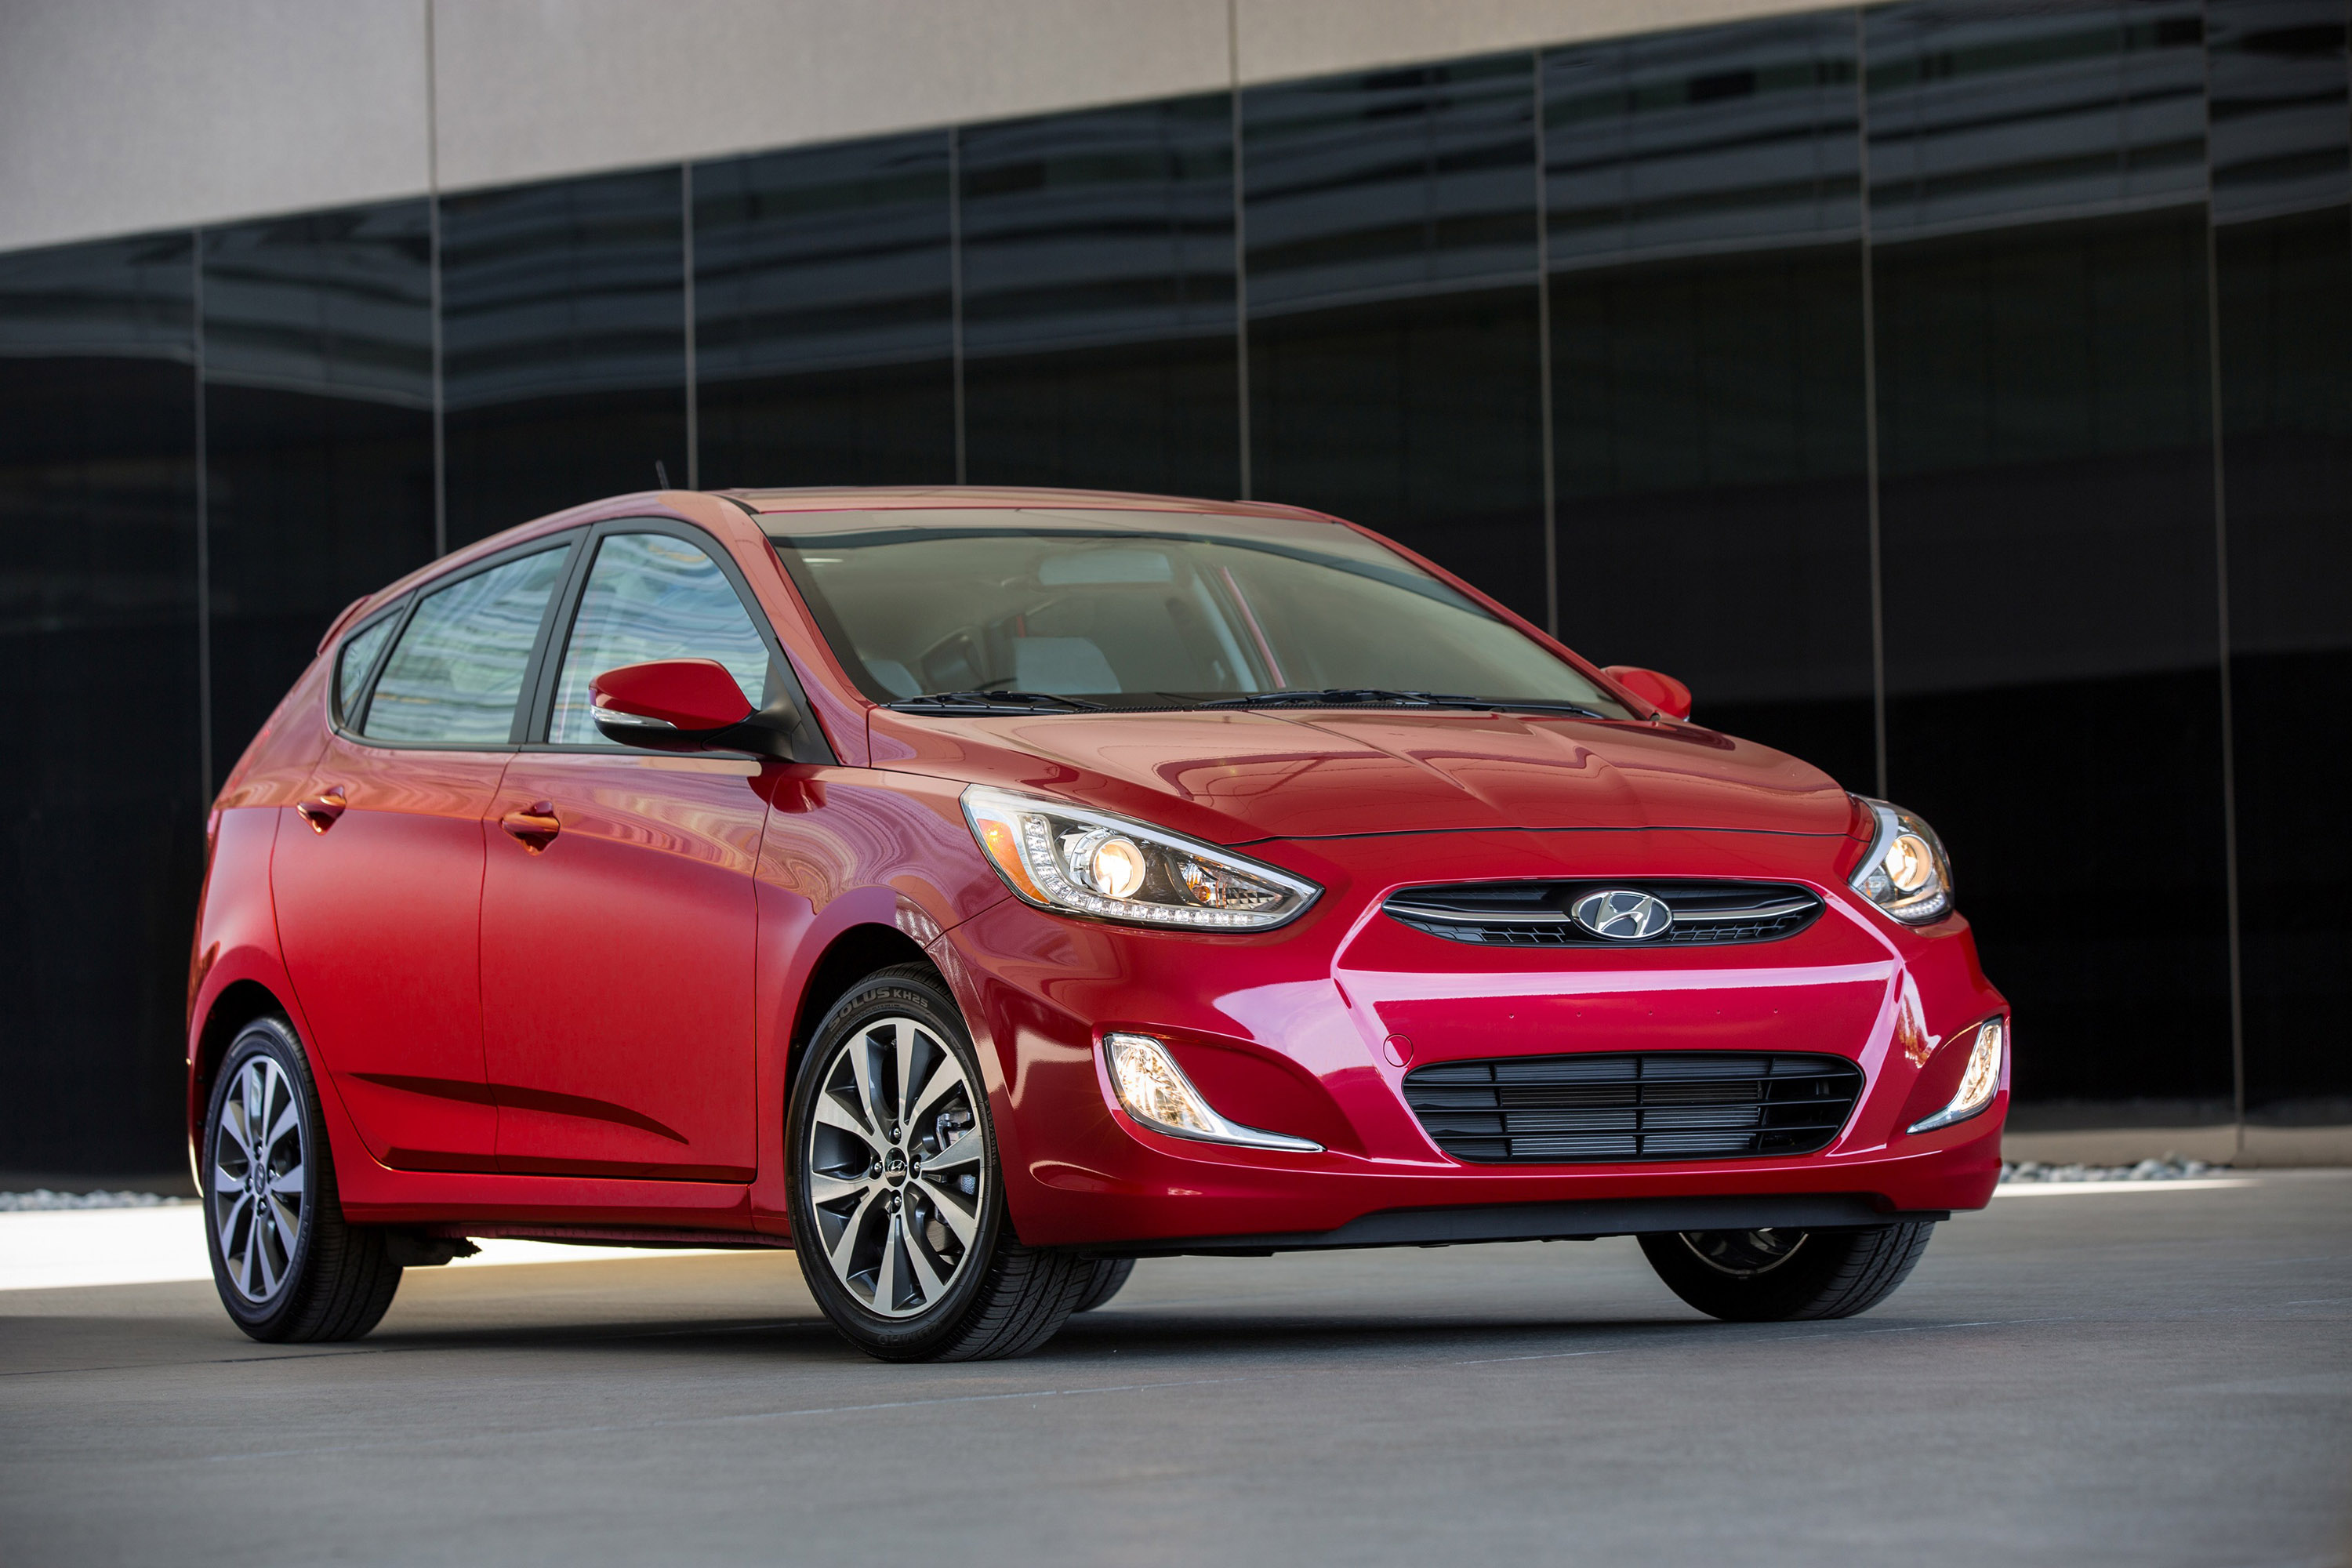 2016 Hyundai Accent comes with additional features and tons of gadgets